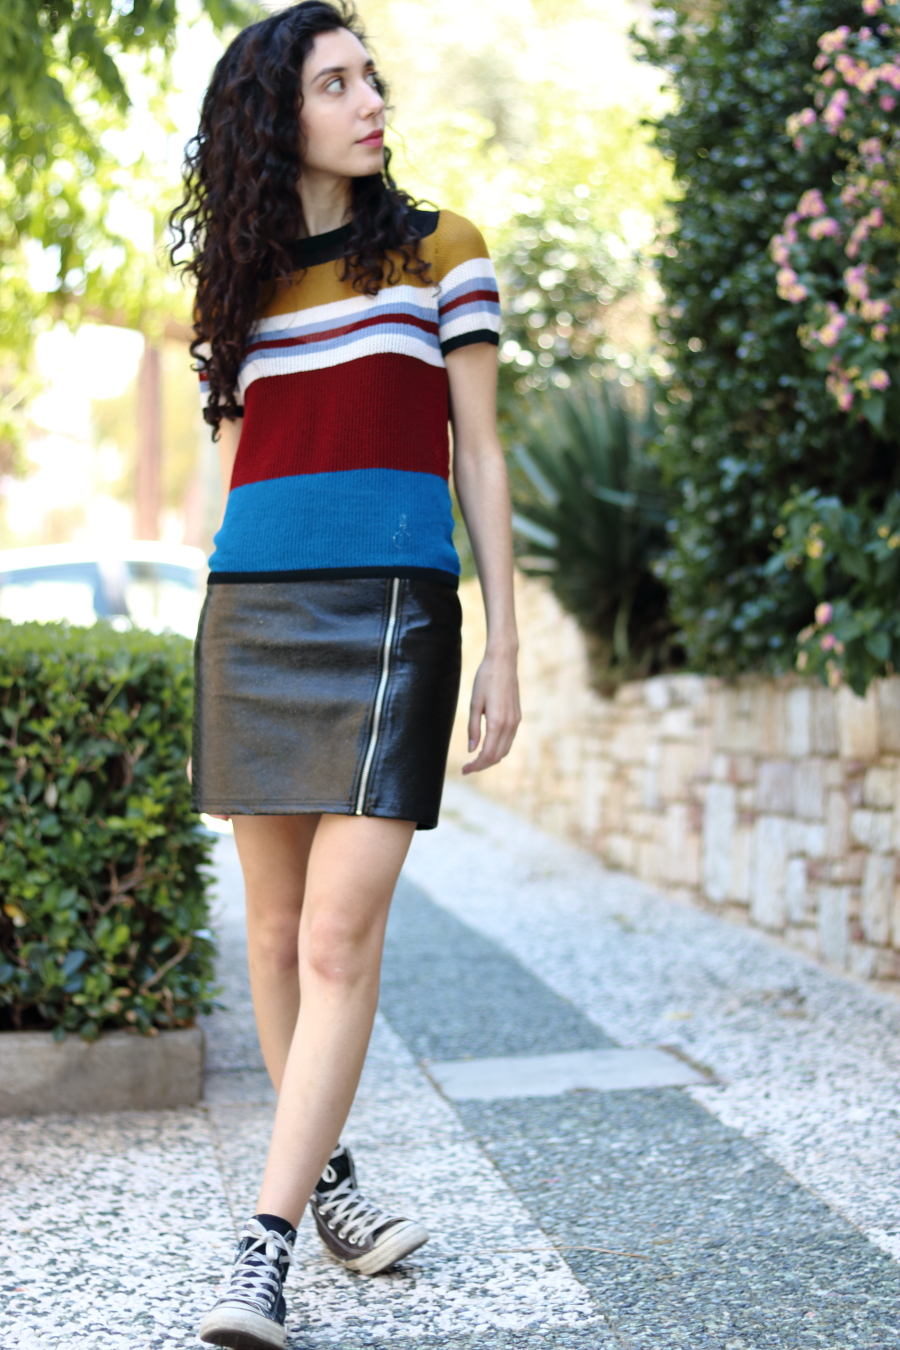 vinyl skirt for summer | bare legs | confidence boost | www.theblushfulhippocrene.blogspot.com |